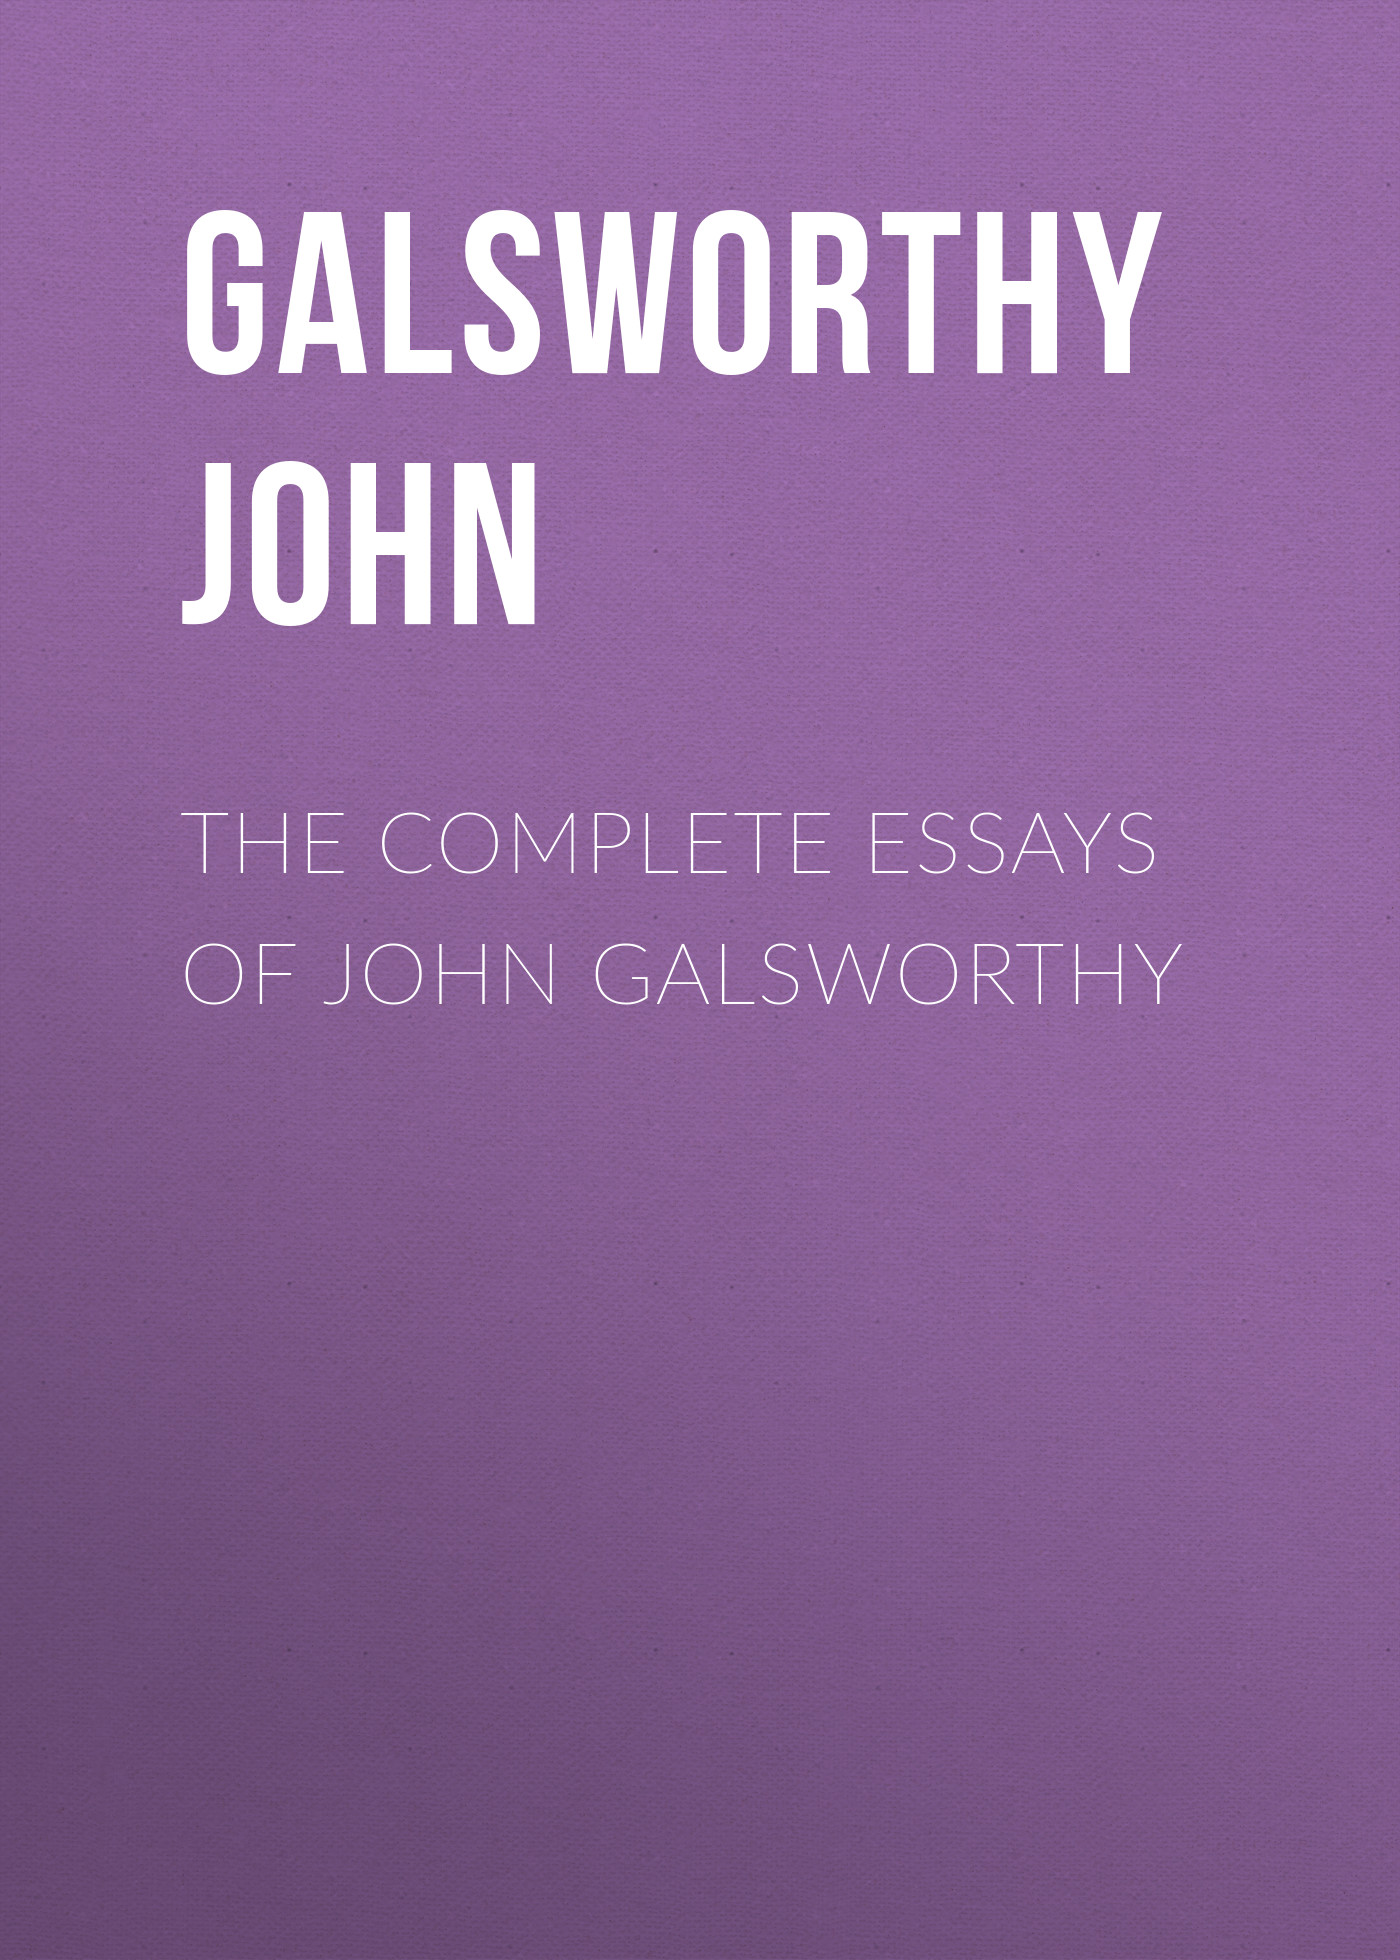 Galsworthy John The Complete Essays of John Galsworthy john galsworthy five tales